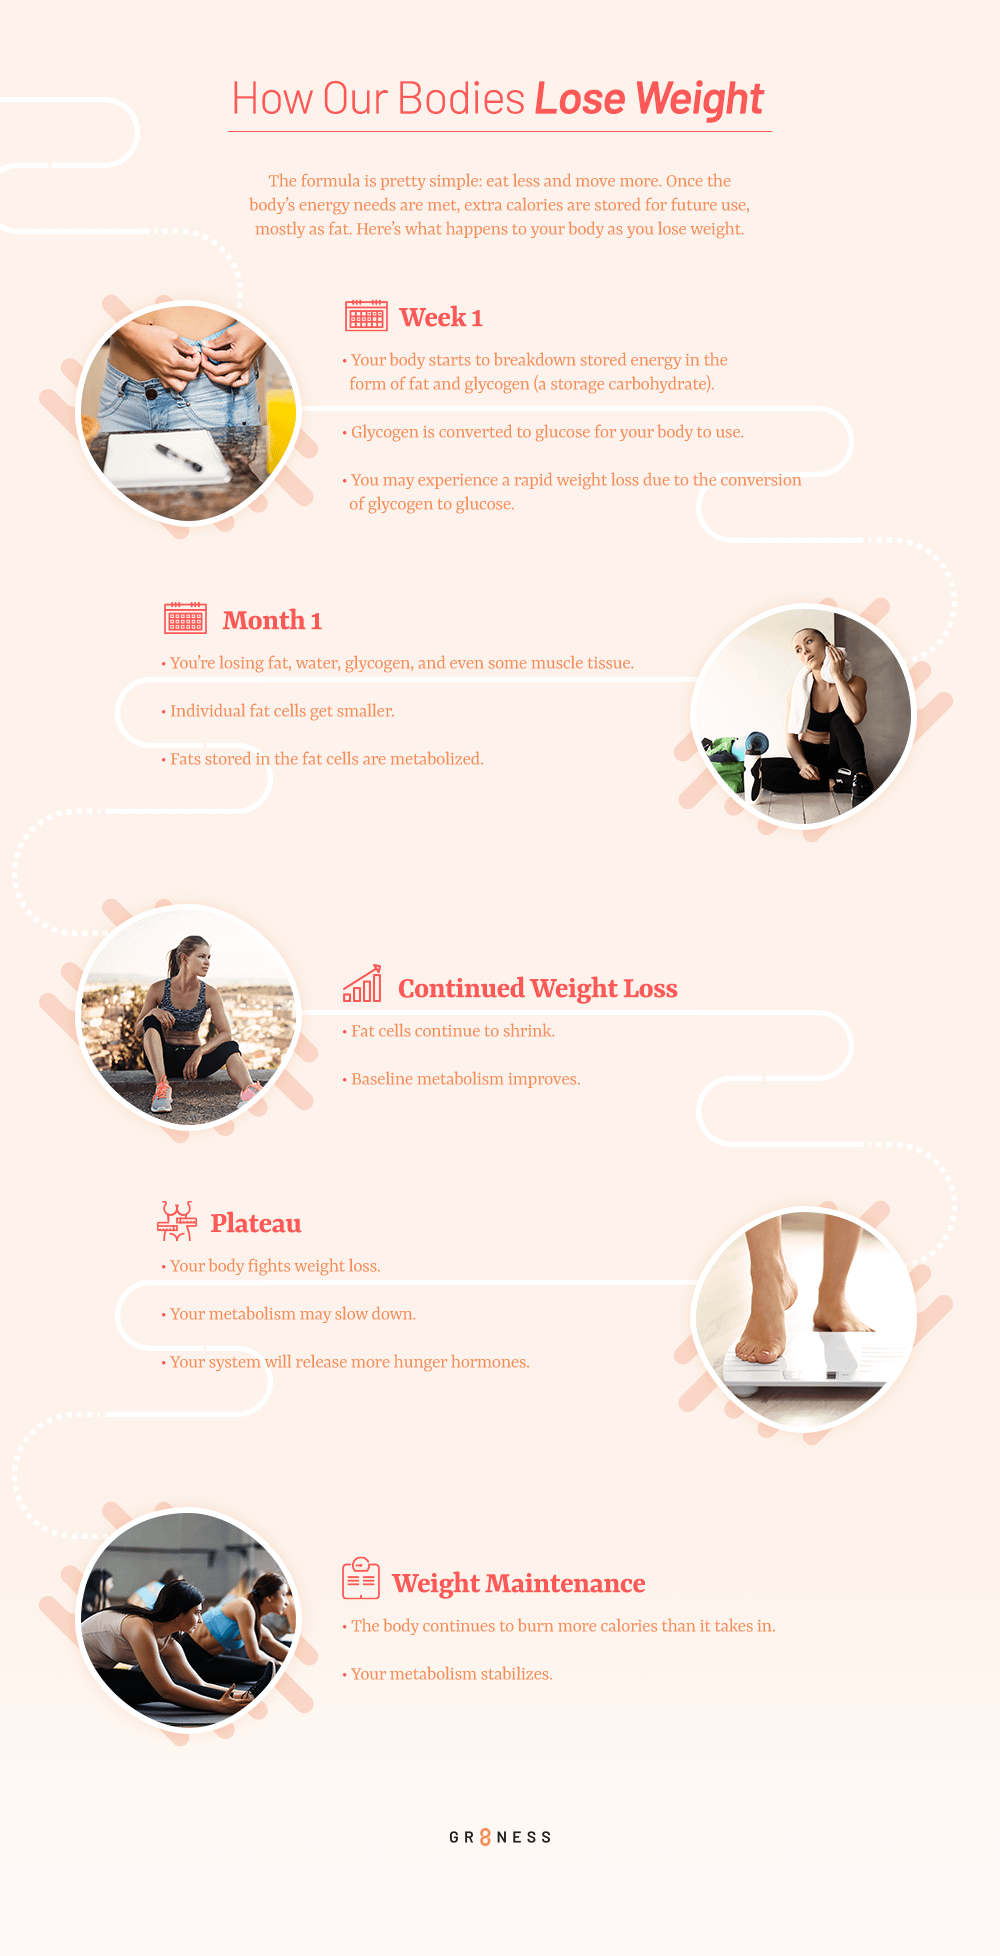 Step by step guide about how our body loses weight overtime